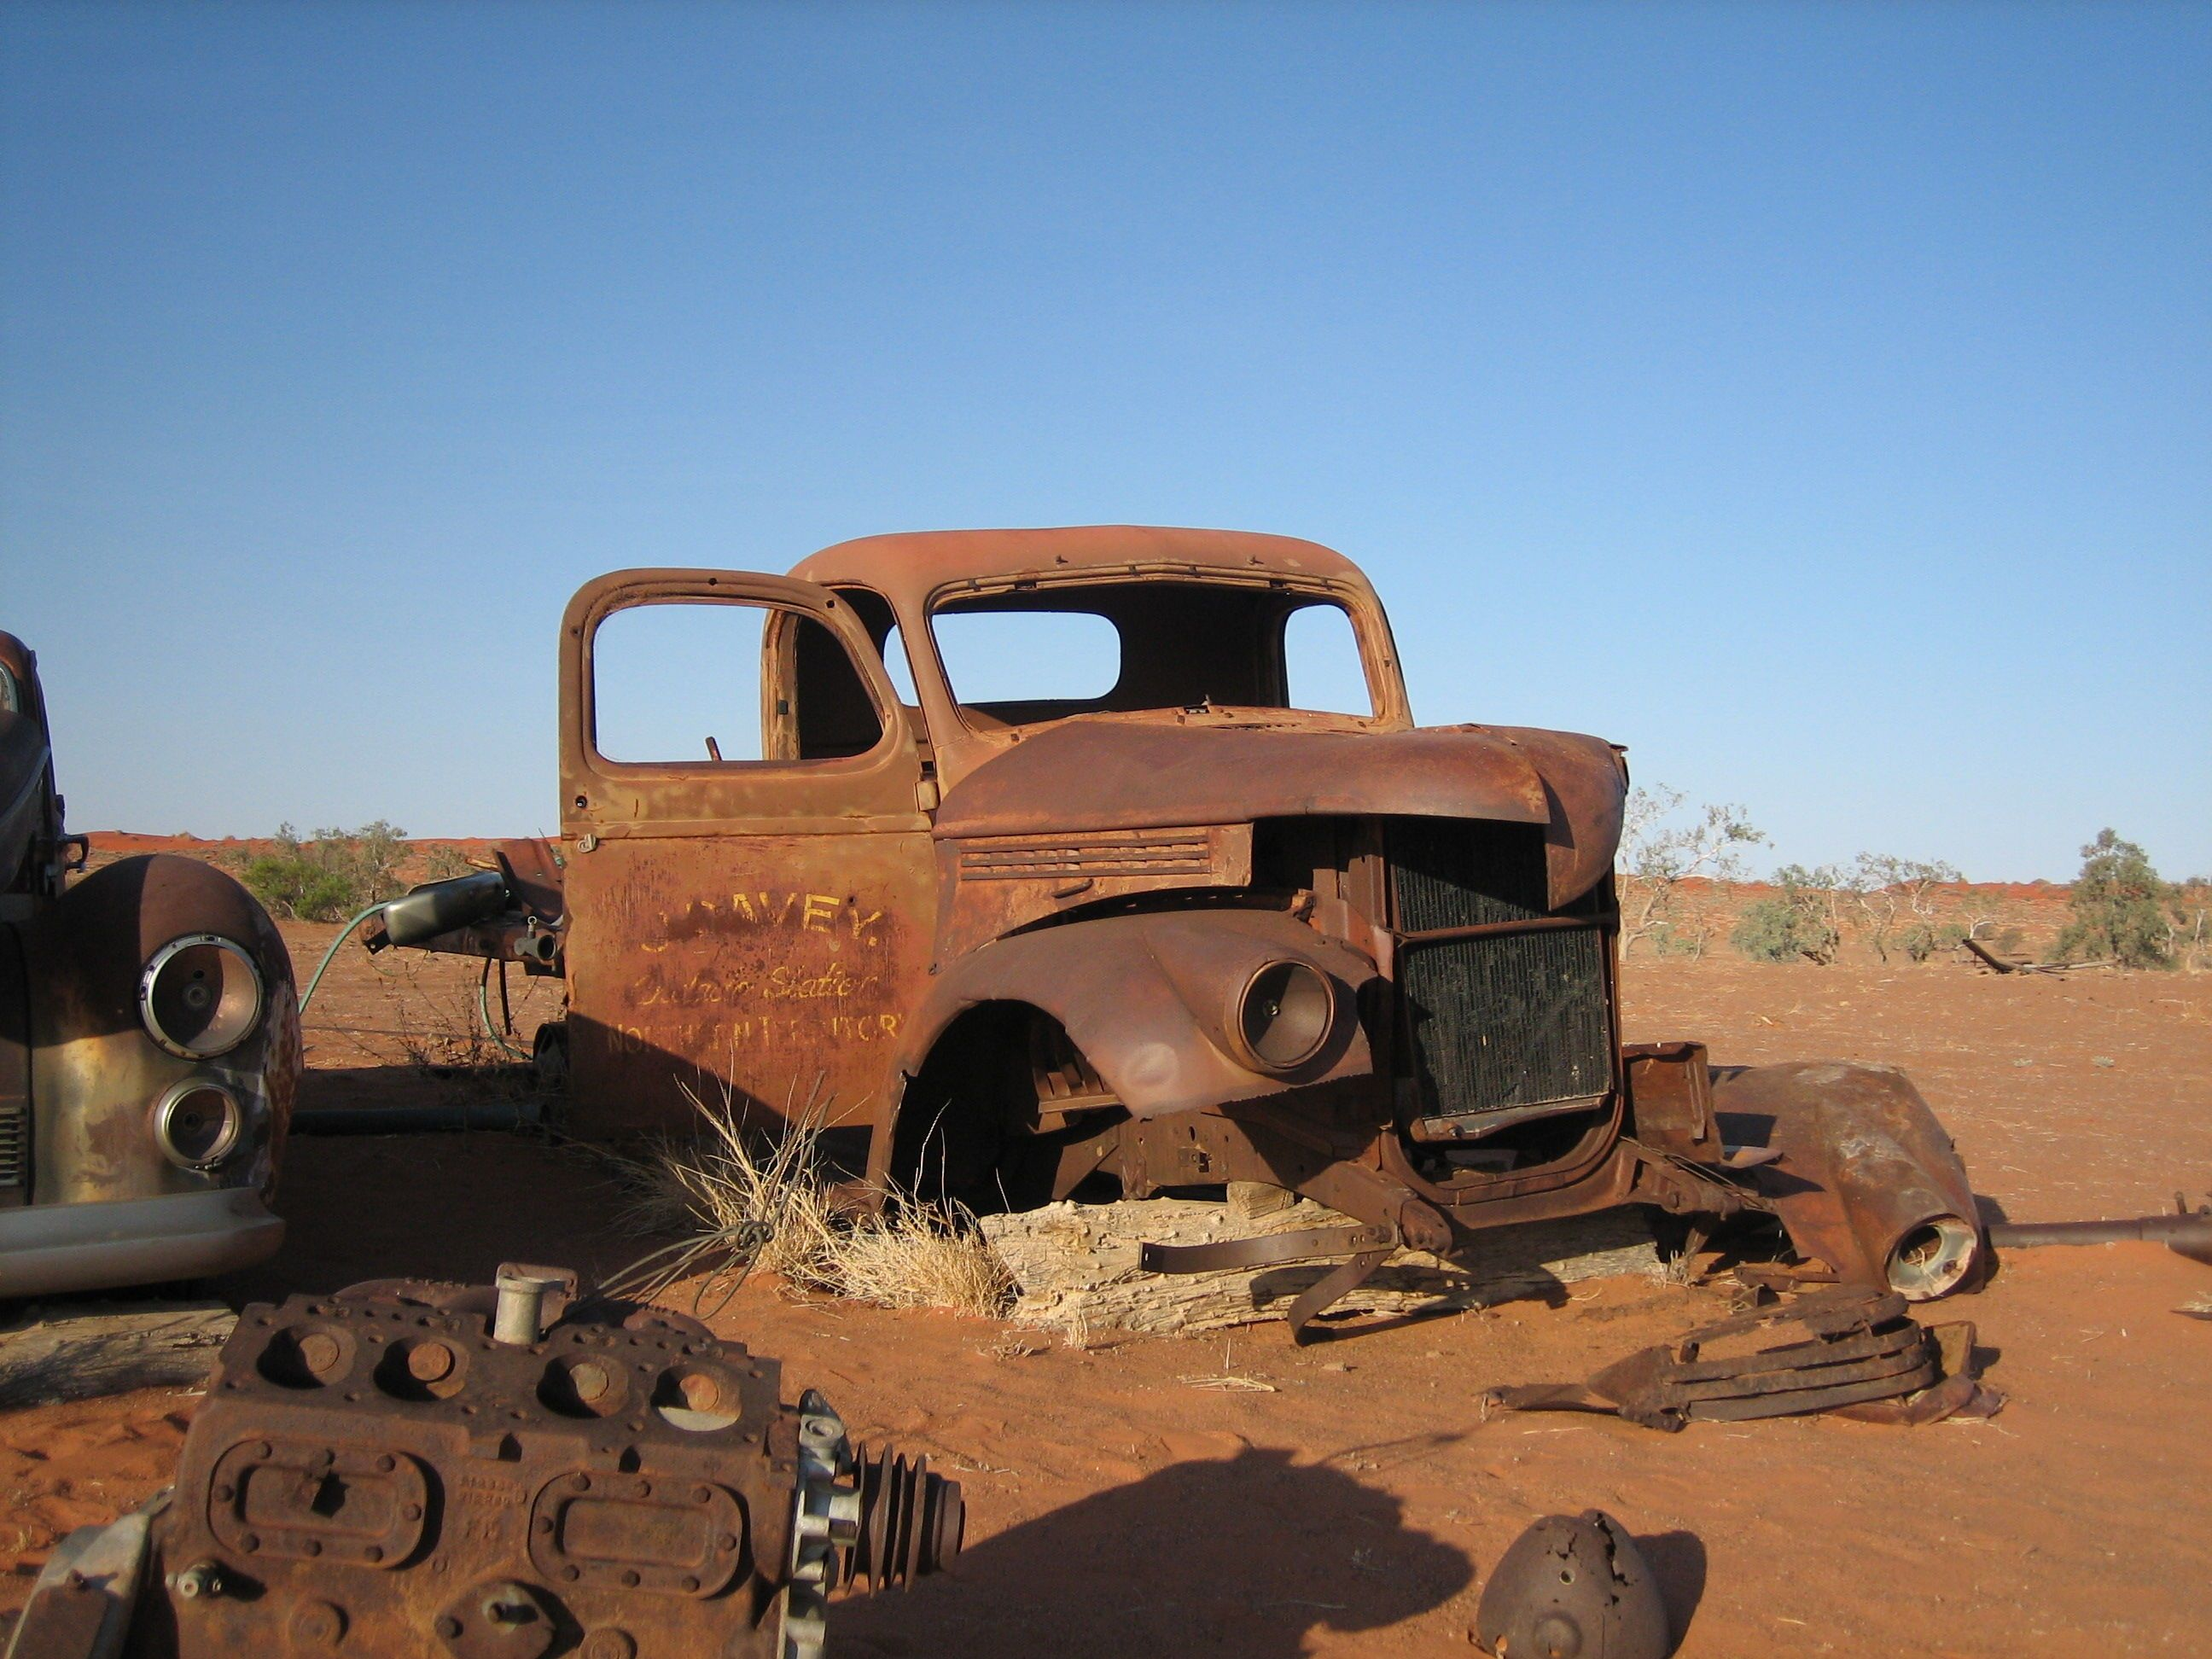 Old Truck At Old Anadado Northern Territory Seeaustralia